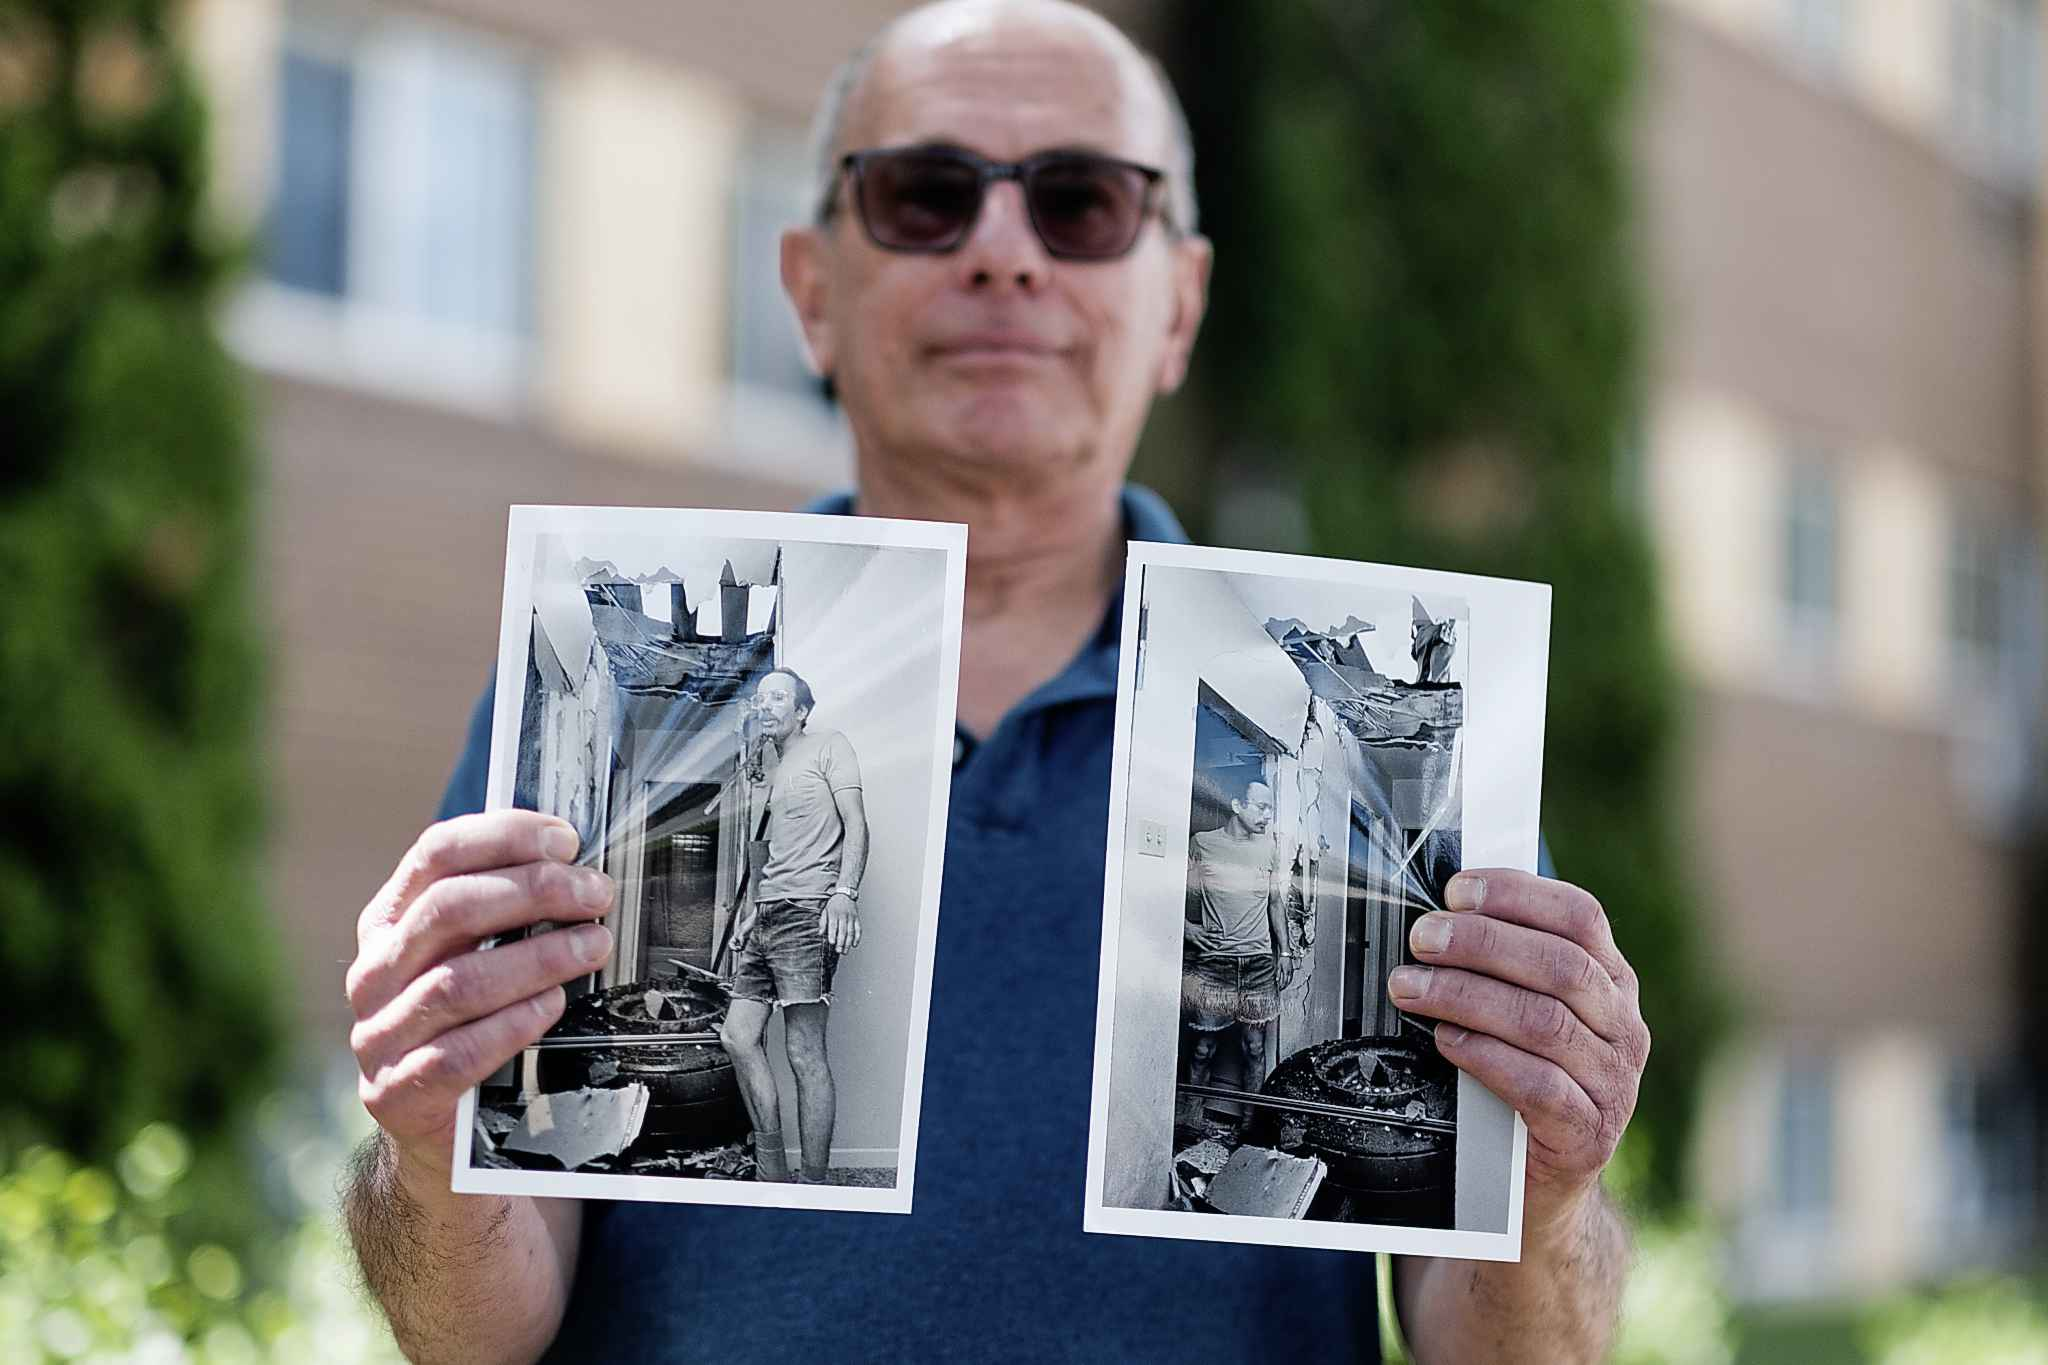 Mark Paul stands outside the Grant Avenue apartment, where he lived in July 1982, when a 400 pound wheel from an airplane came crashing through the roof narrowly missing him.